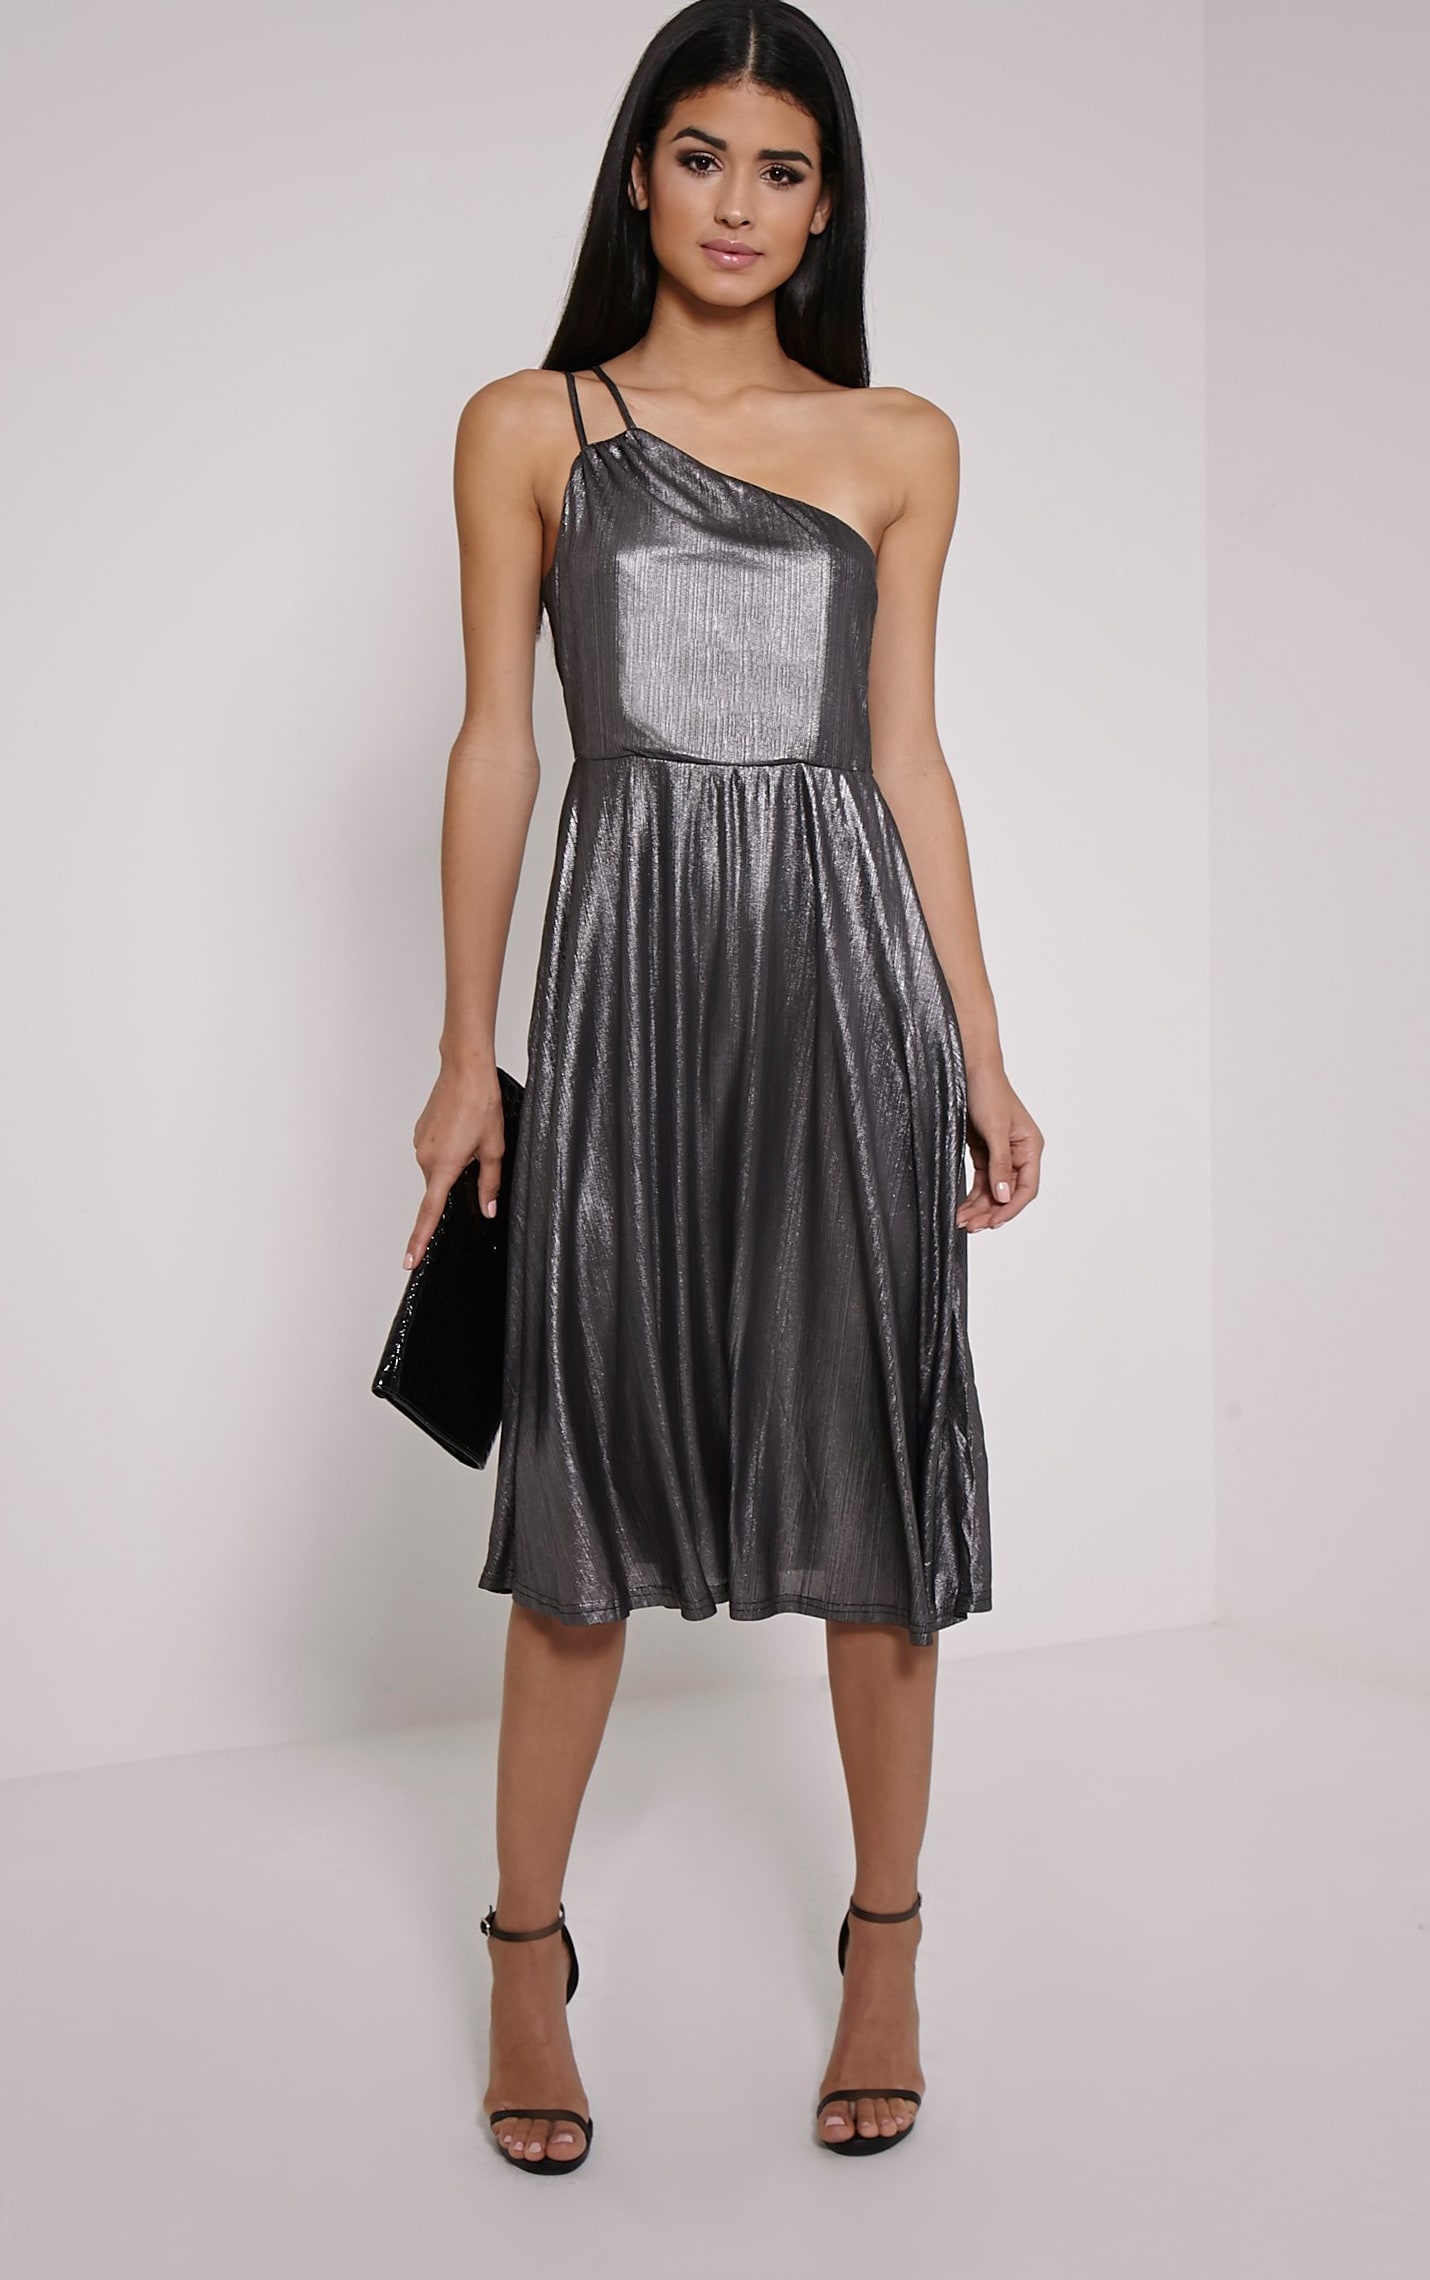 Stephy Silver Metallic Skater Dress 4